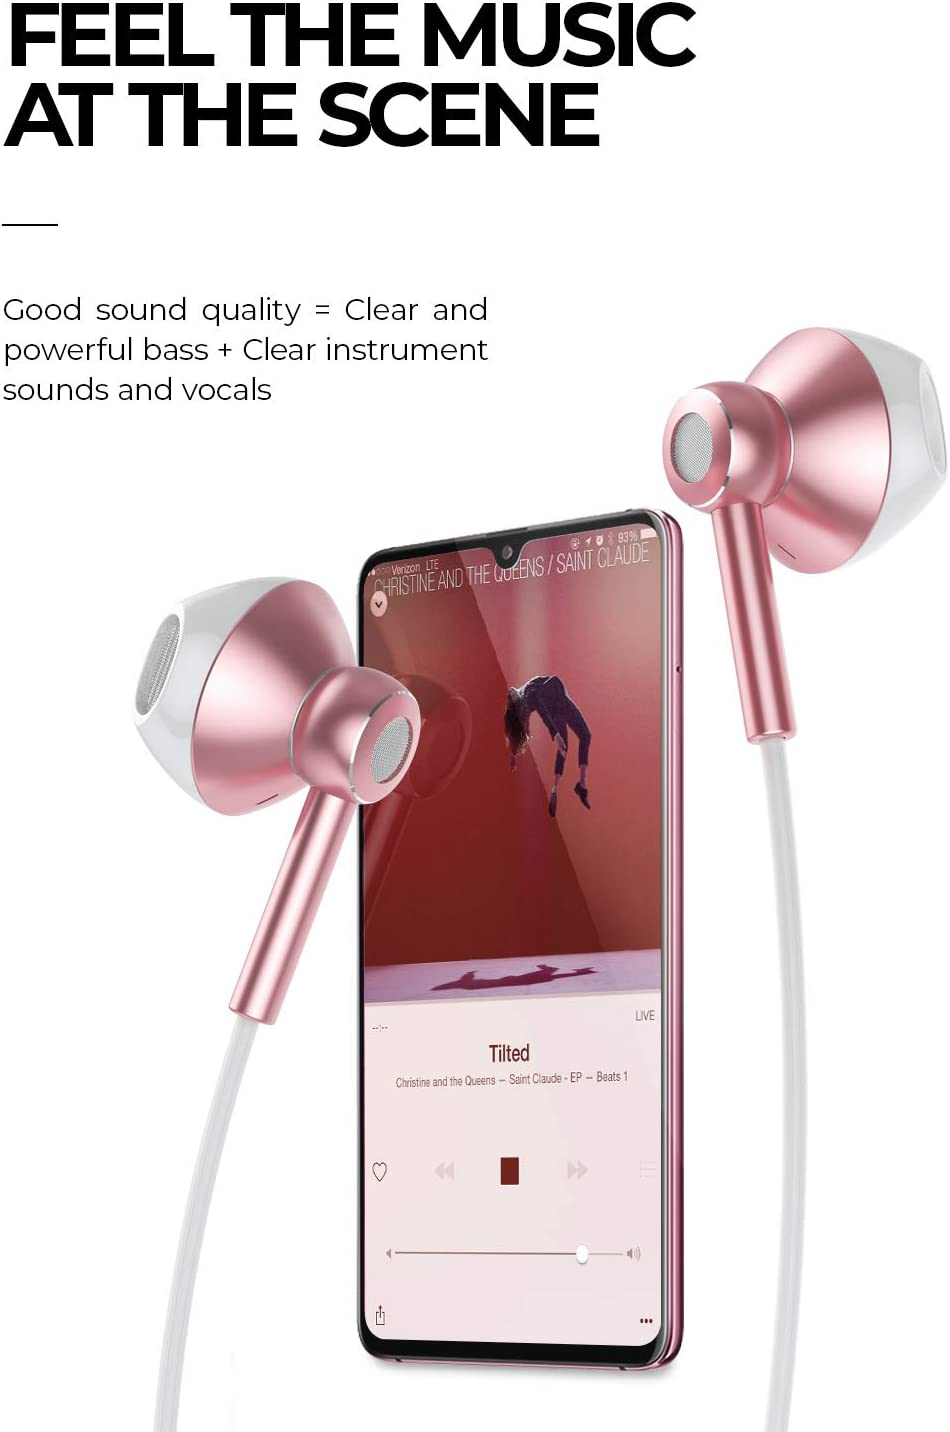 Linklike Classic 2 Quad Dynamic Drivers Deep Bass Half In-Ear Headphones with Microphone, Volume Control, Noise Isolating Lightweight 3.5mm Wired Earphones for Work, Commute, Sports Rose Gold White